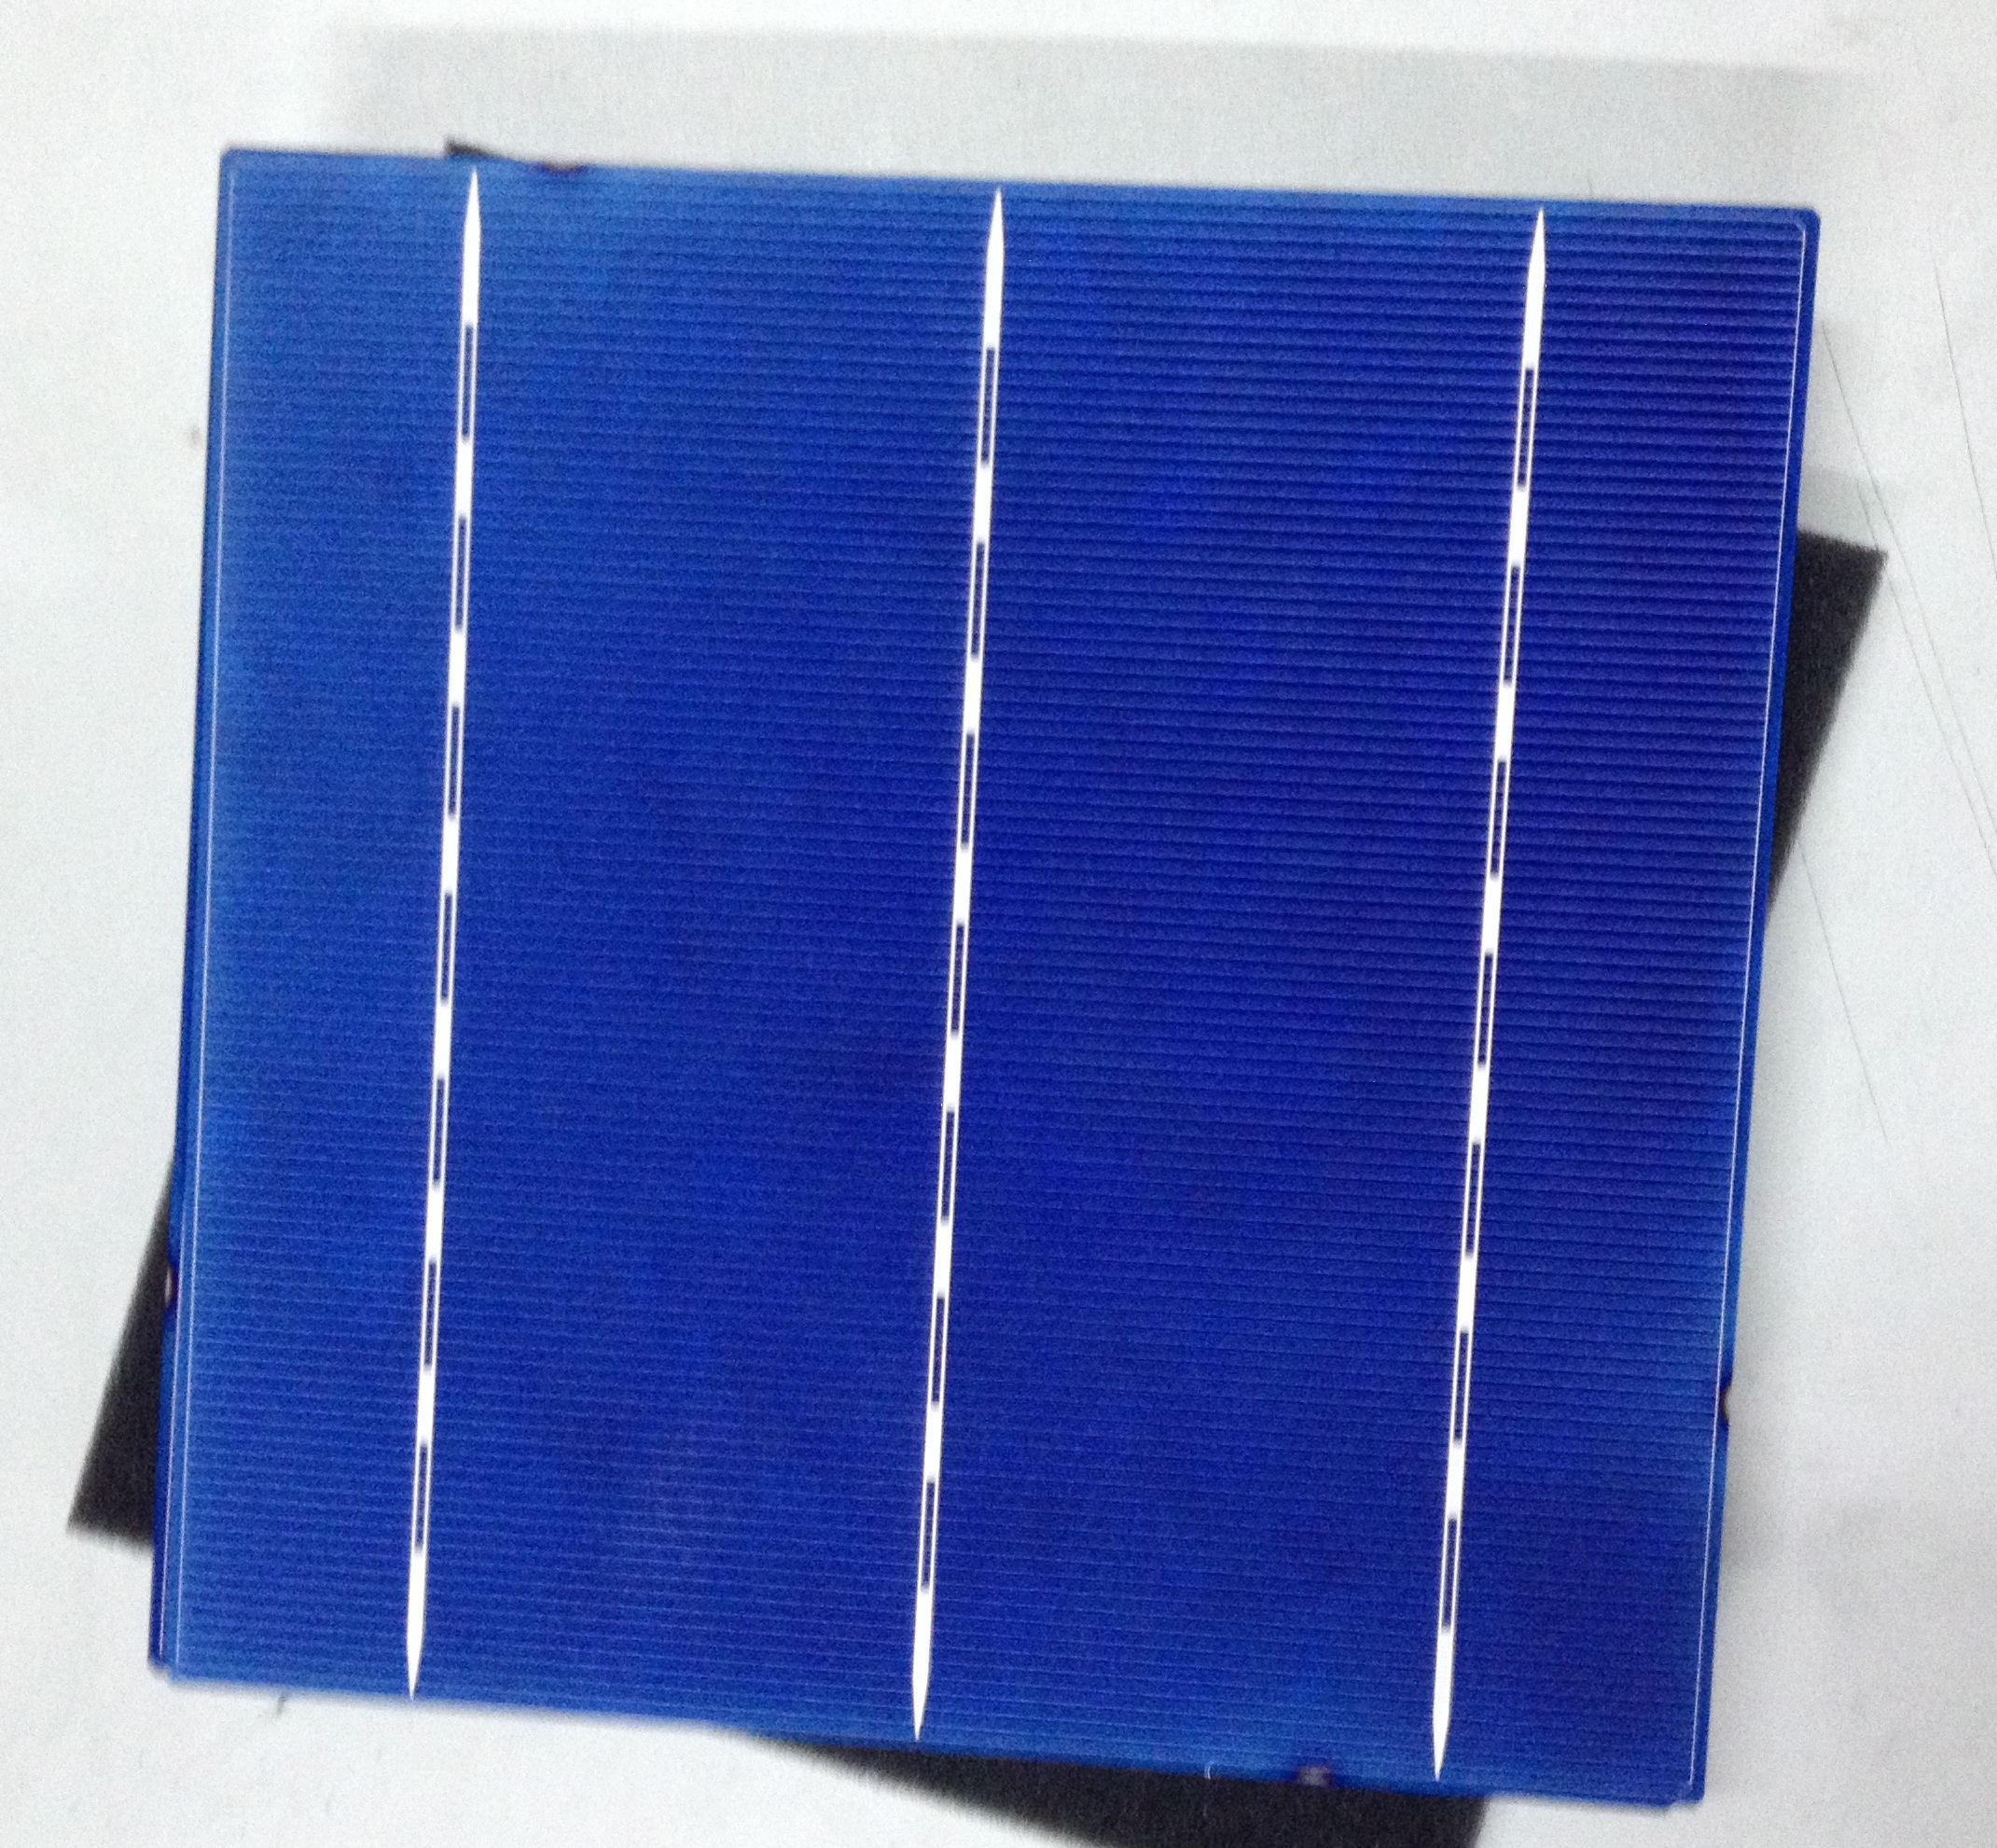 Polyctrystalline Solar Cells-Good Quality and stable supply- 17.4%